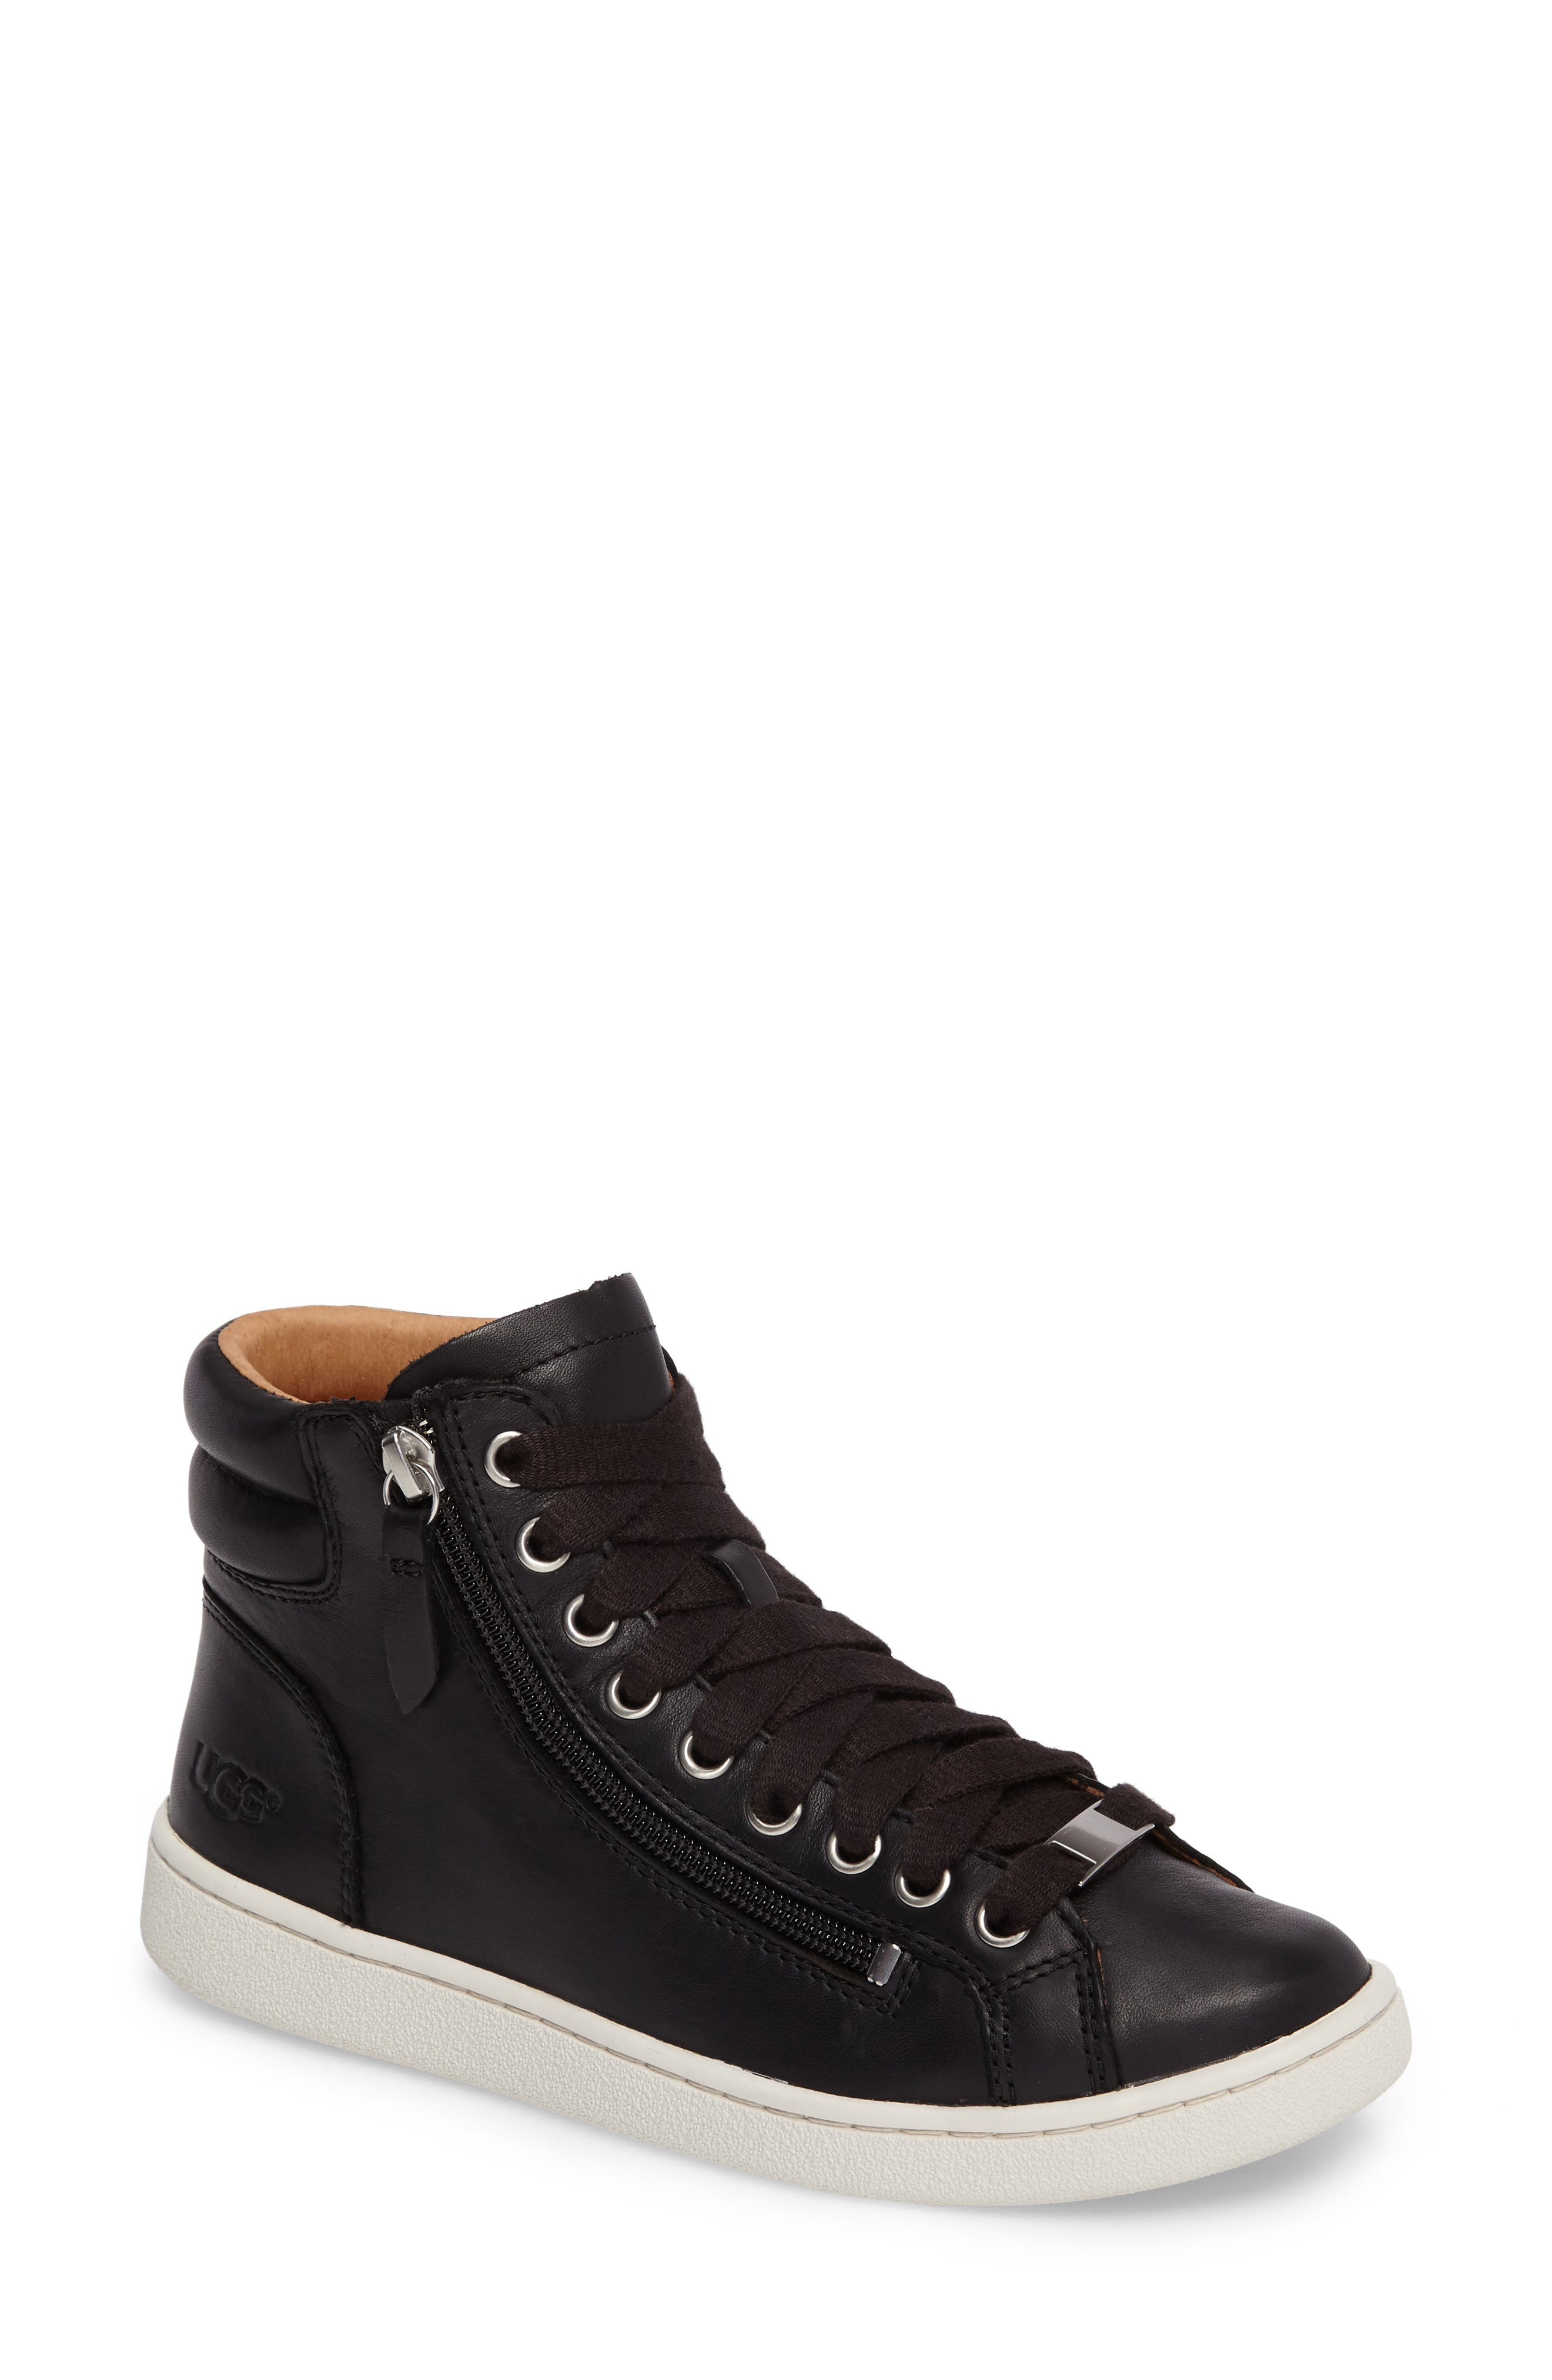 UGG<SUP>®</SUP>, UGG Olive High Top Sneaker, Main thumbnail 1, color, BLACK LEATHER